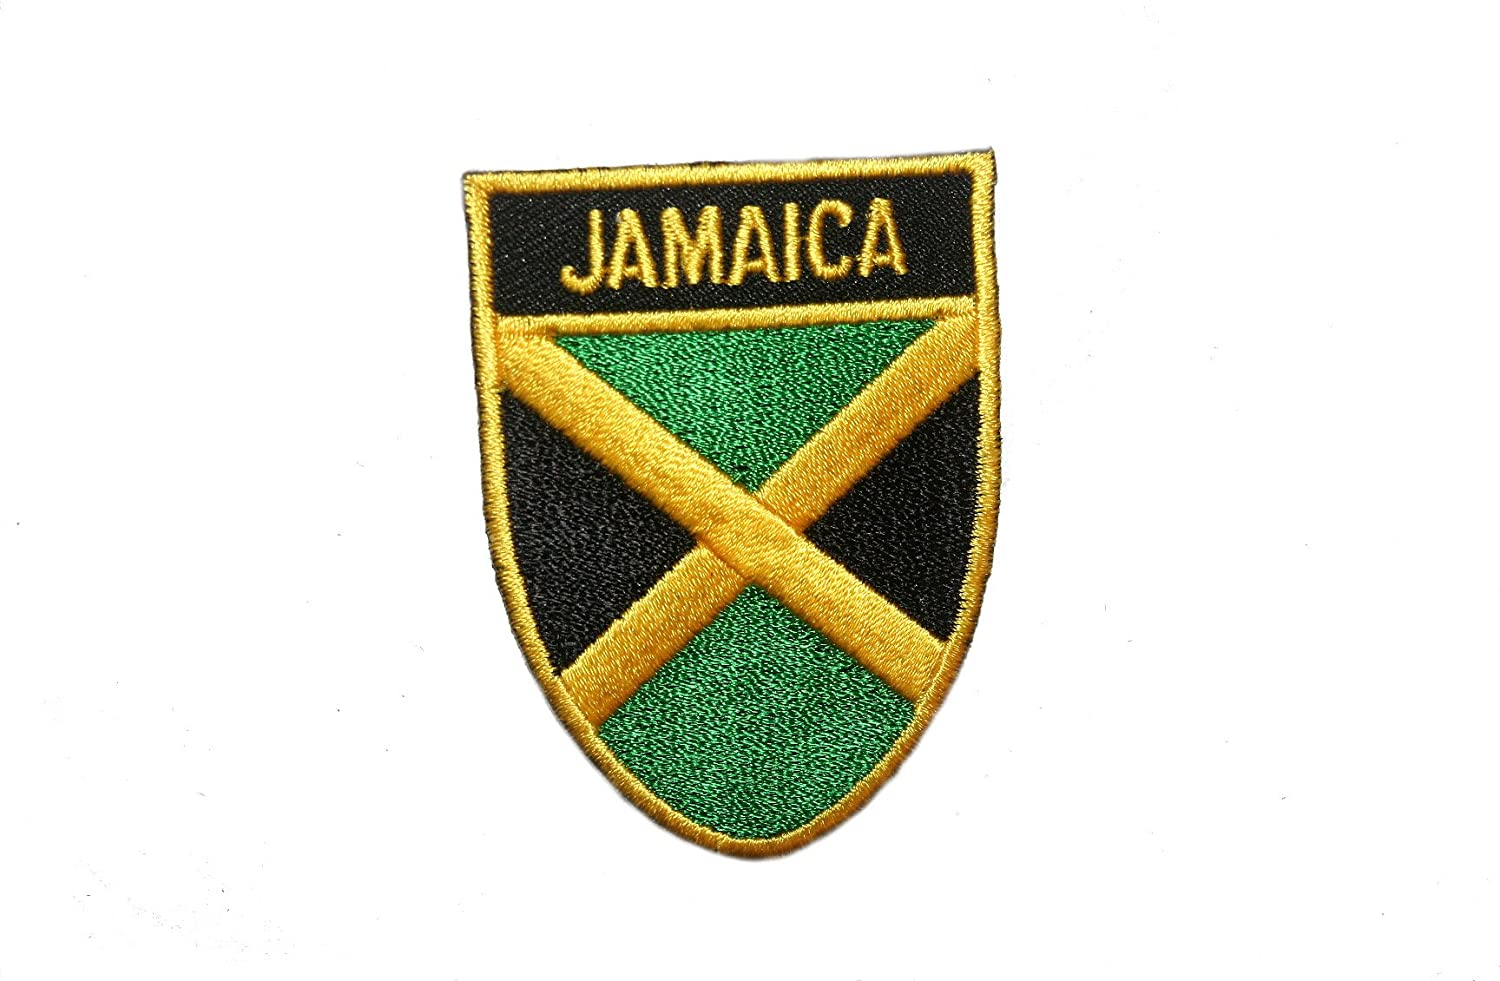 Jamaica Country Flag sale OVAL SHIELD Iron Embroidered Department store on Patch Crest